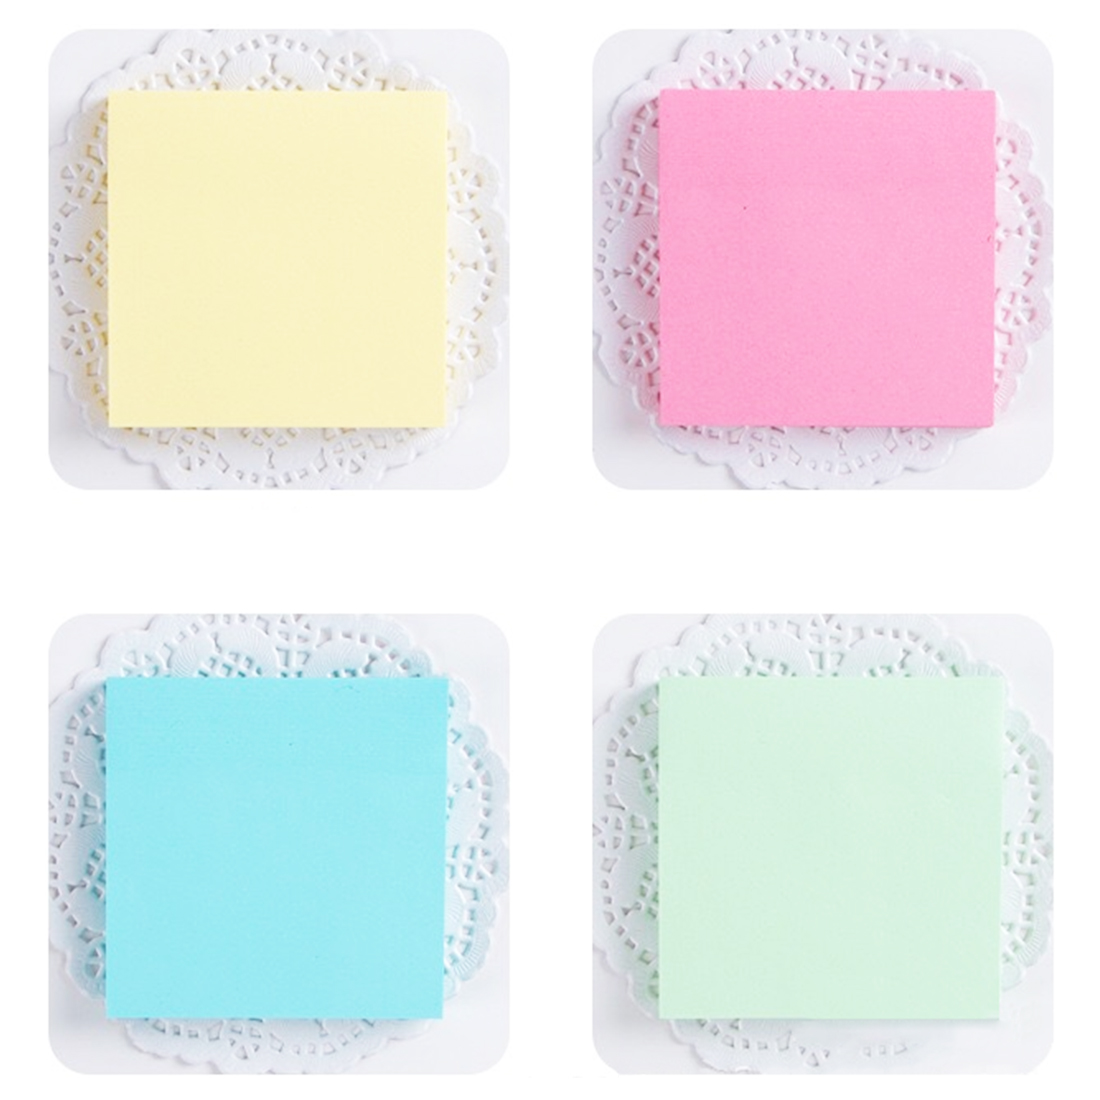 FangNymph Cute Portable Macaron Color Sticky Note Adhesive Paper Post Memo Pad Stationery Office Accessories School supplies